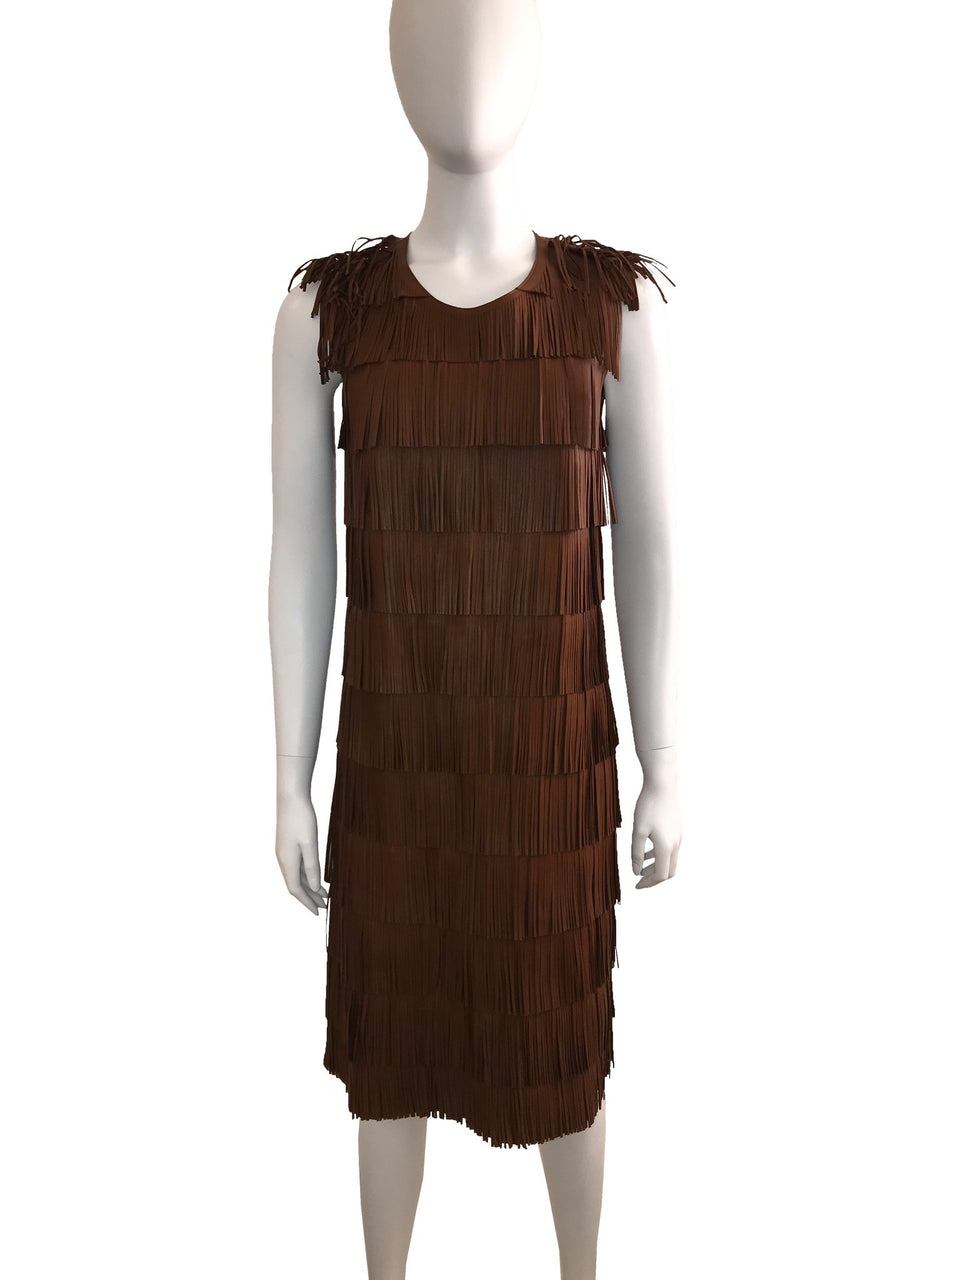 Prada Brown Leather Runway Fringe Dress